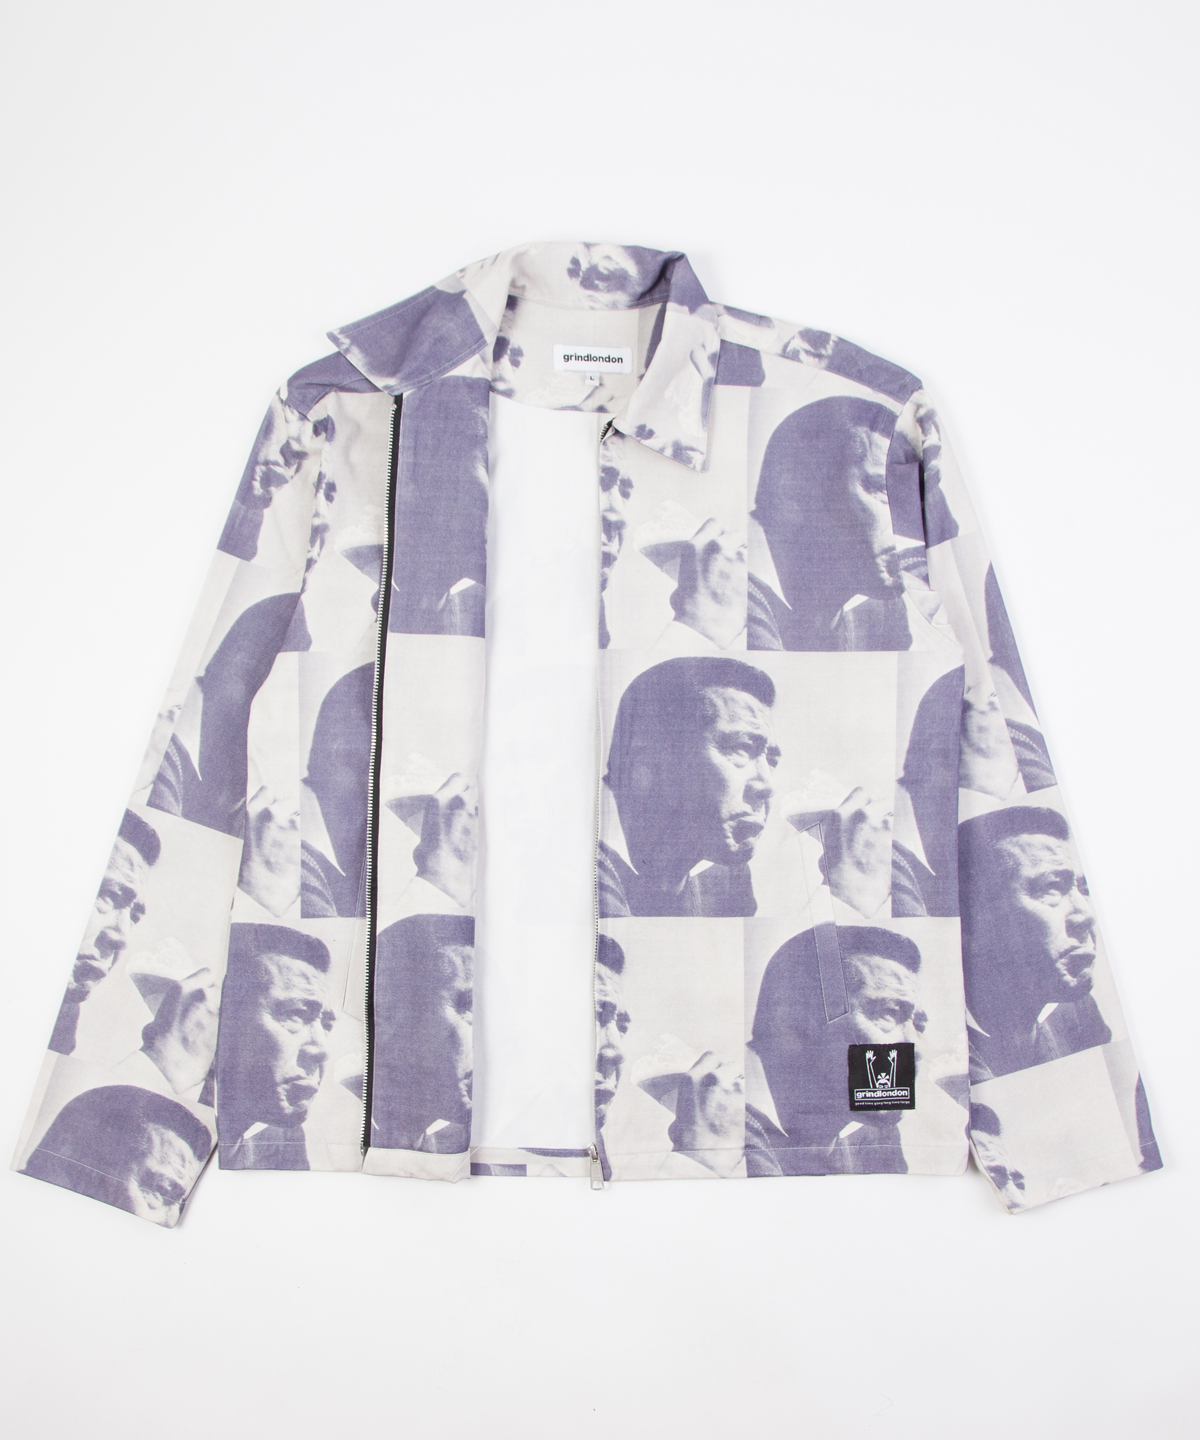 probably the best jacket 2